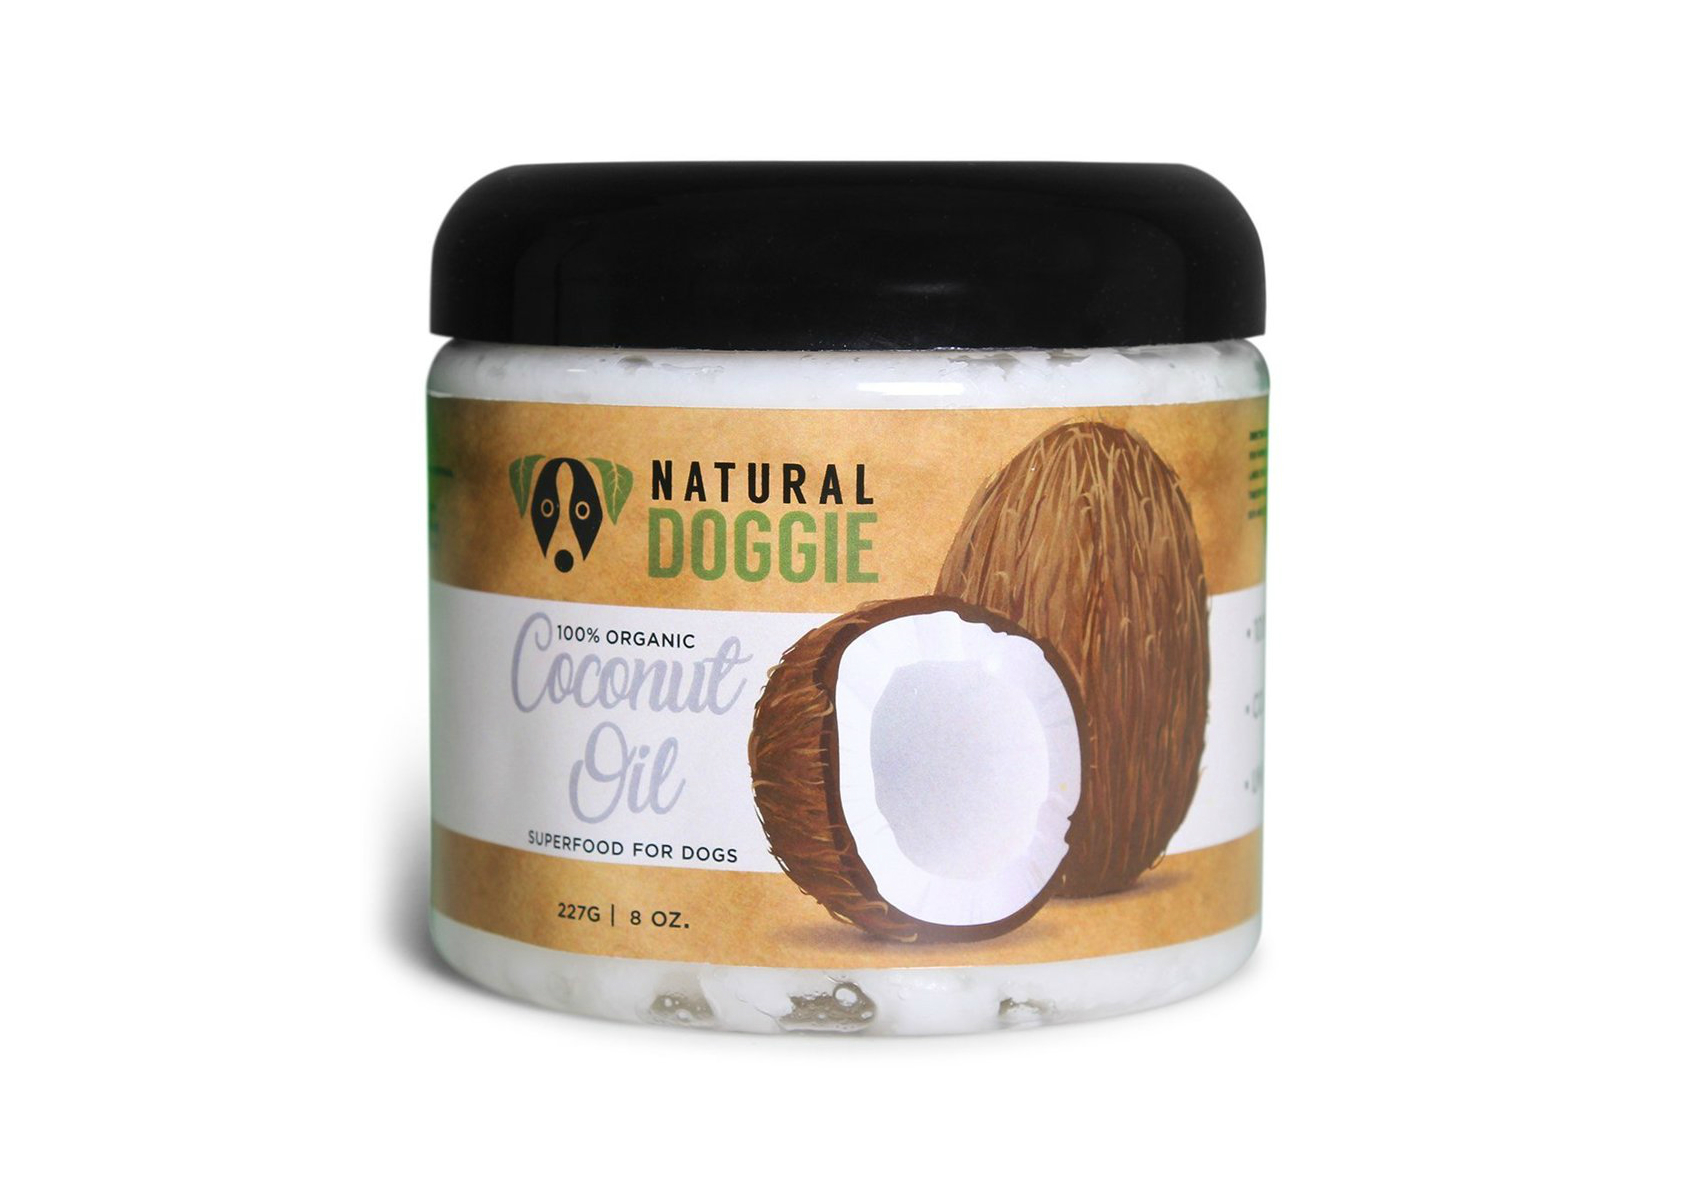 Virgin Coconut Oil - 100% unrefined coconut oil formulated for your pets allows you to supplement your pups diet with a natural super-food! Adding coconut oil to food is a delicious treat your dog will love, all while relieving allergy problems naturally. Can also be used to treat skin issues topically.